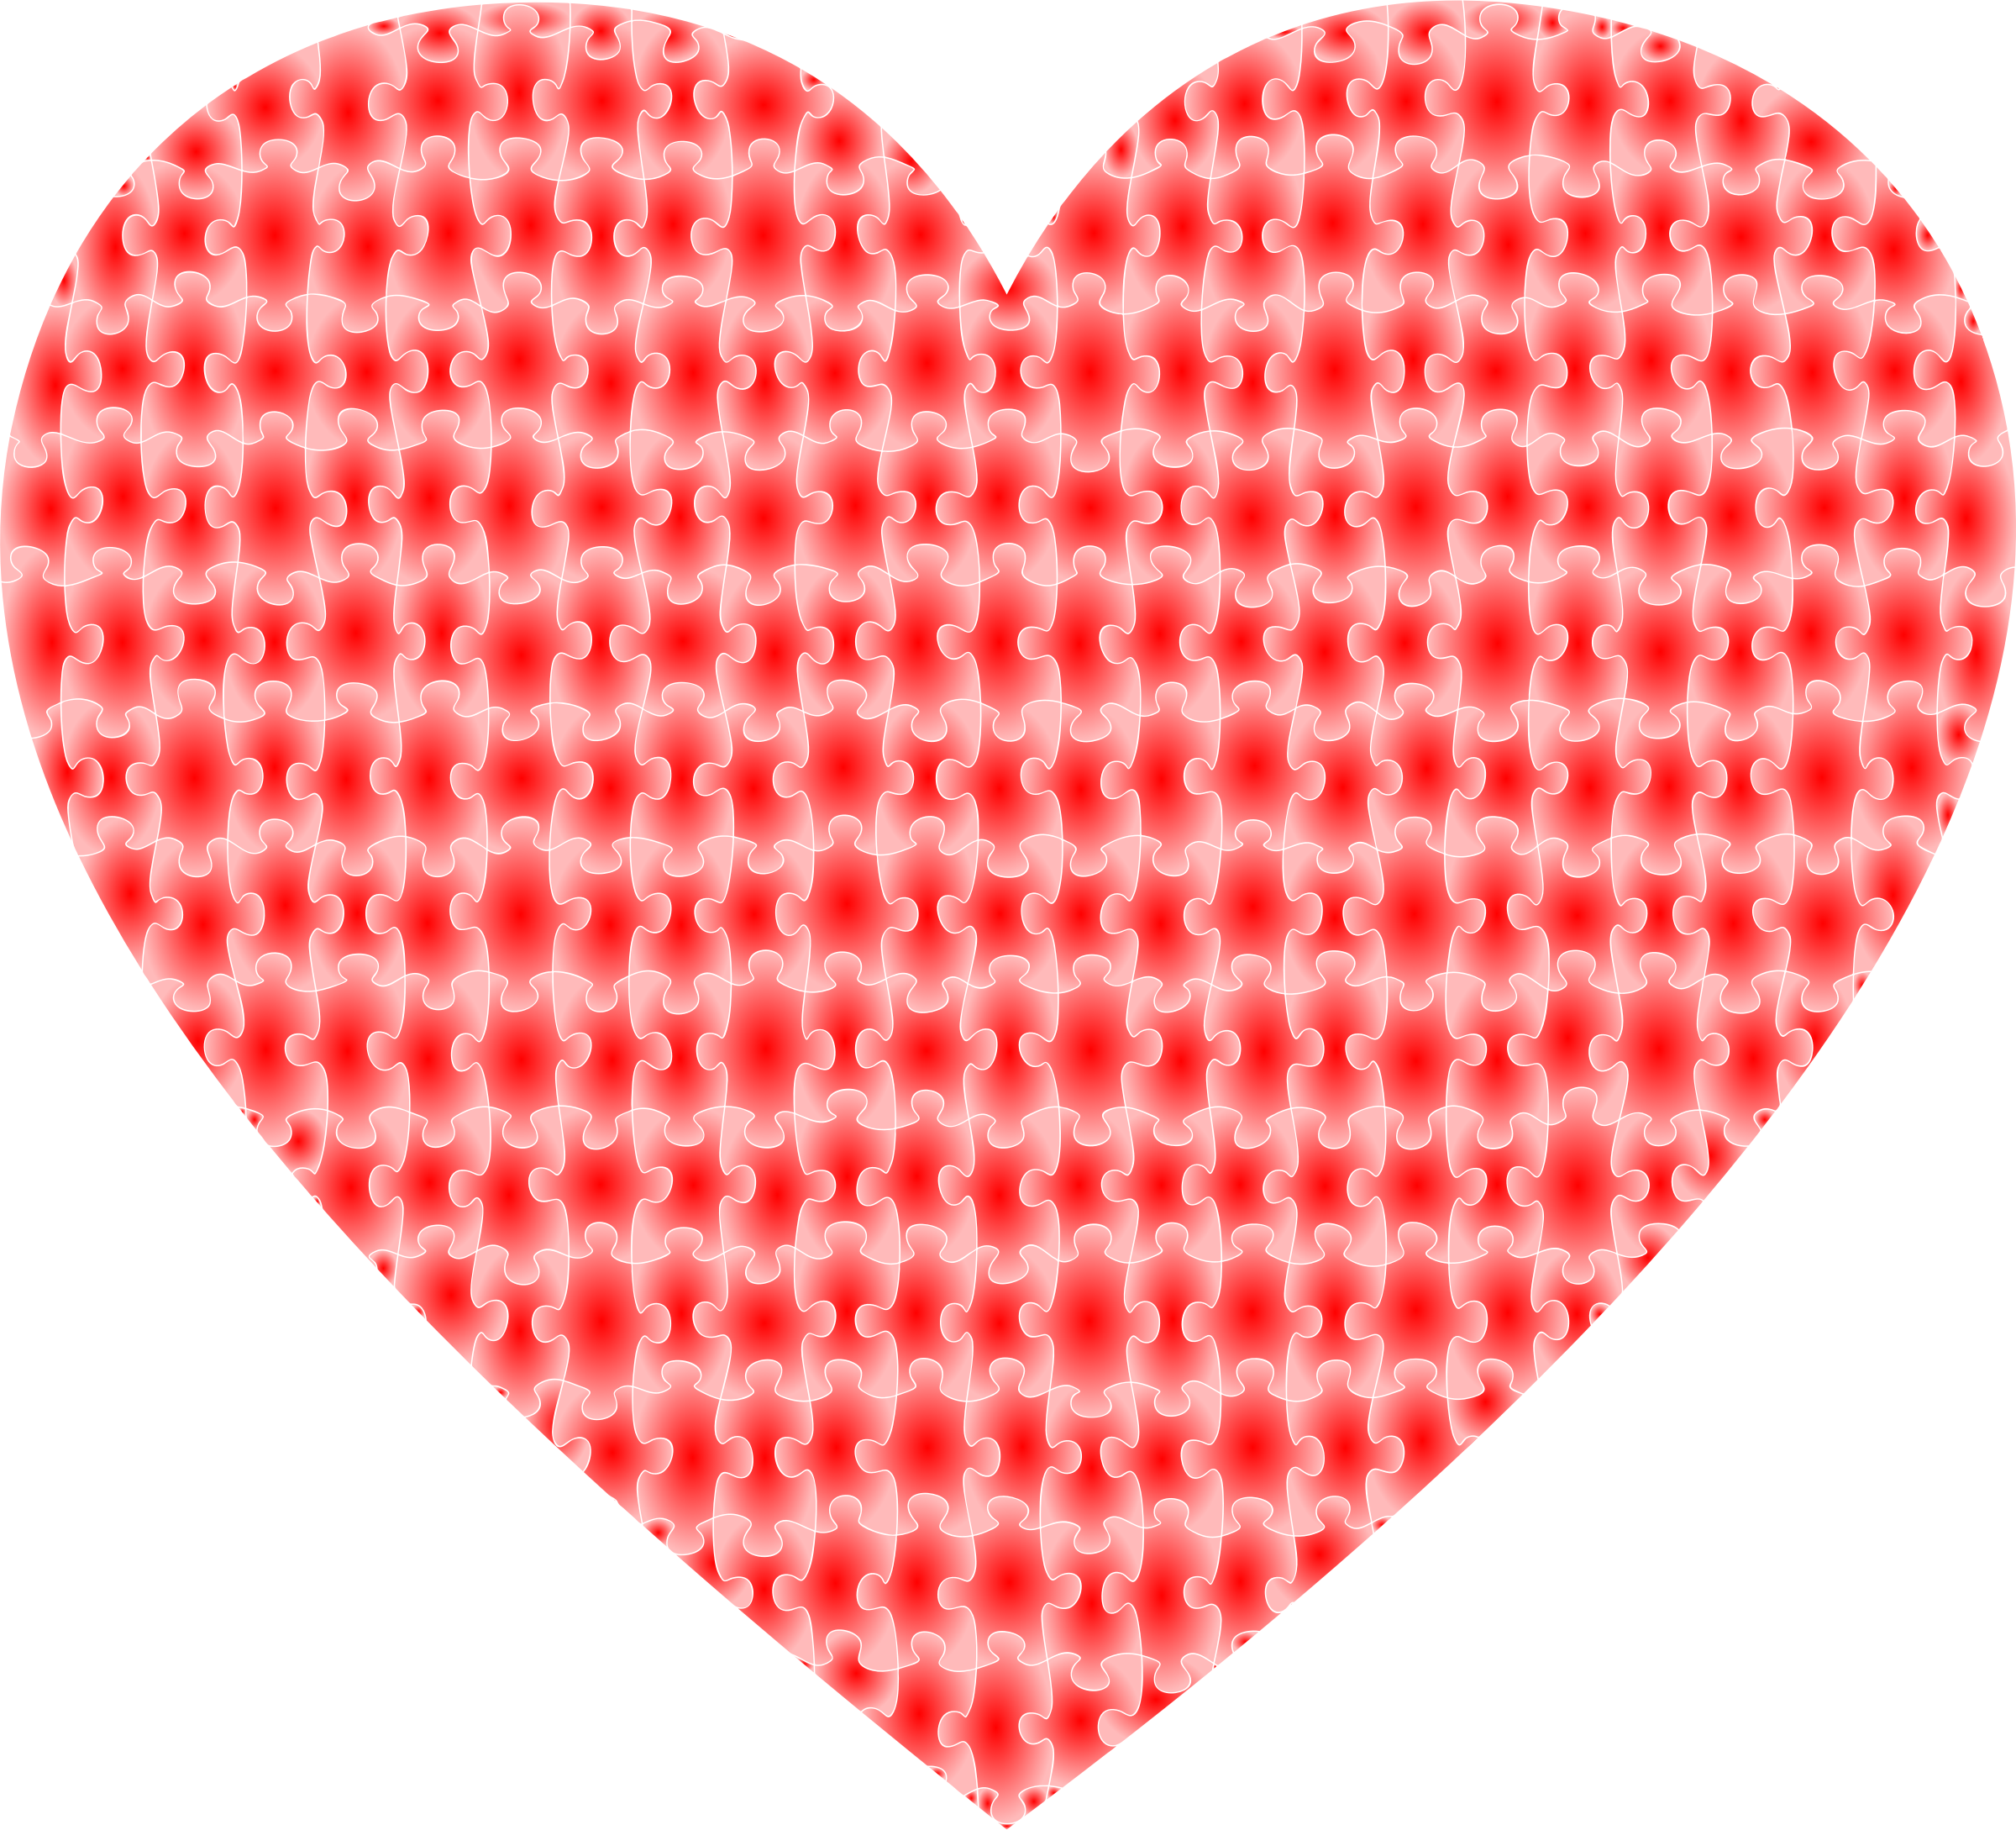 Red puzzle heart 4 by Firkin